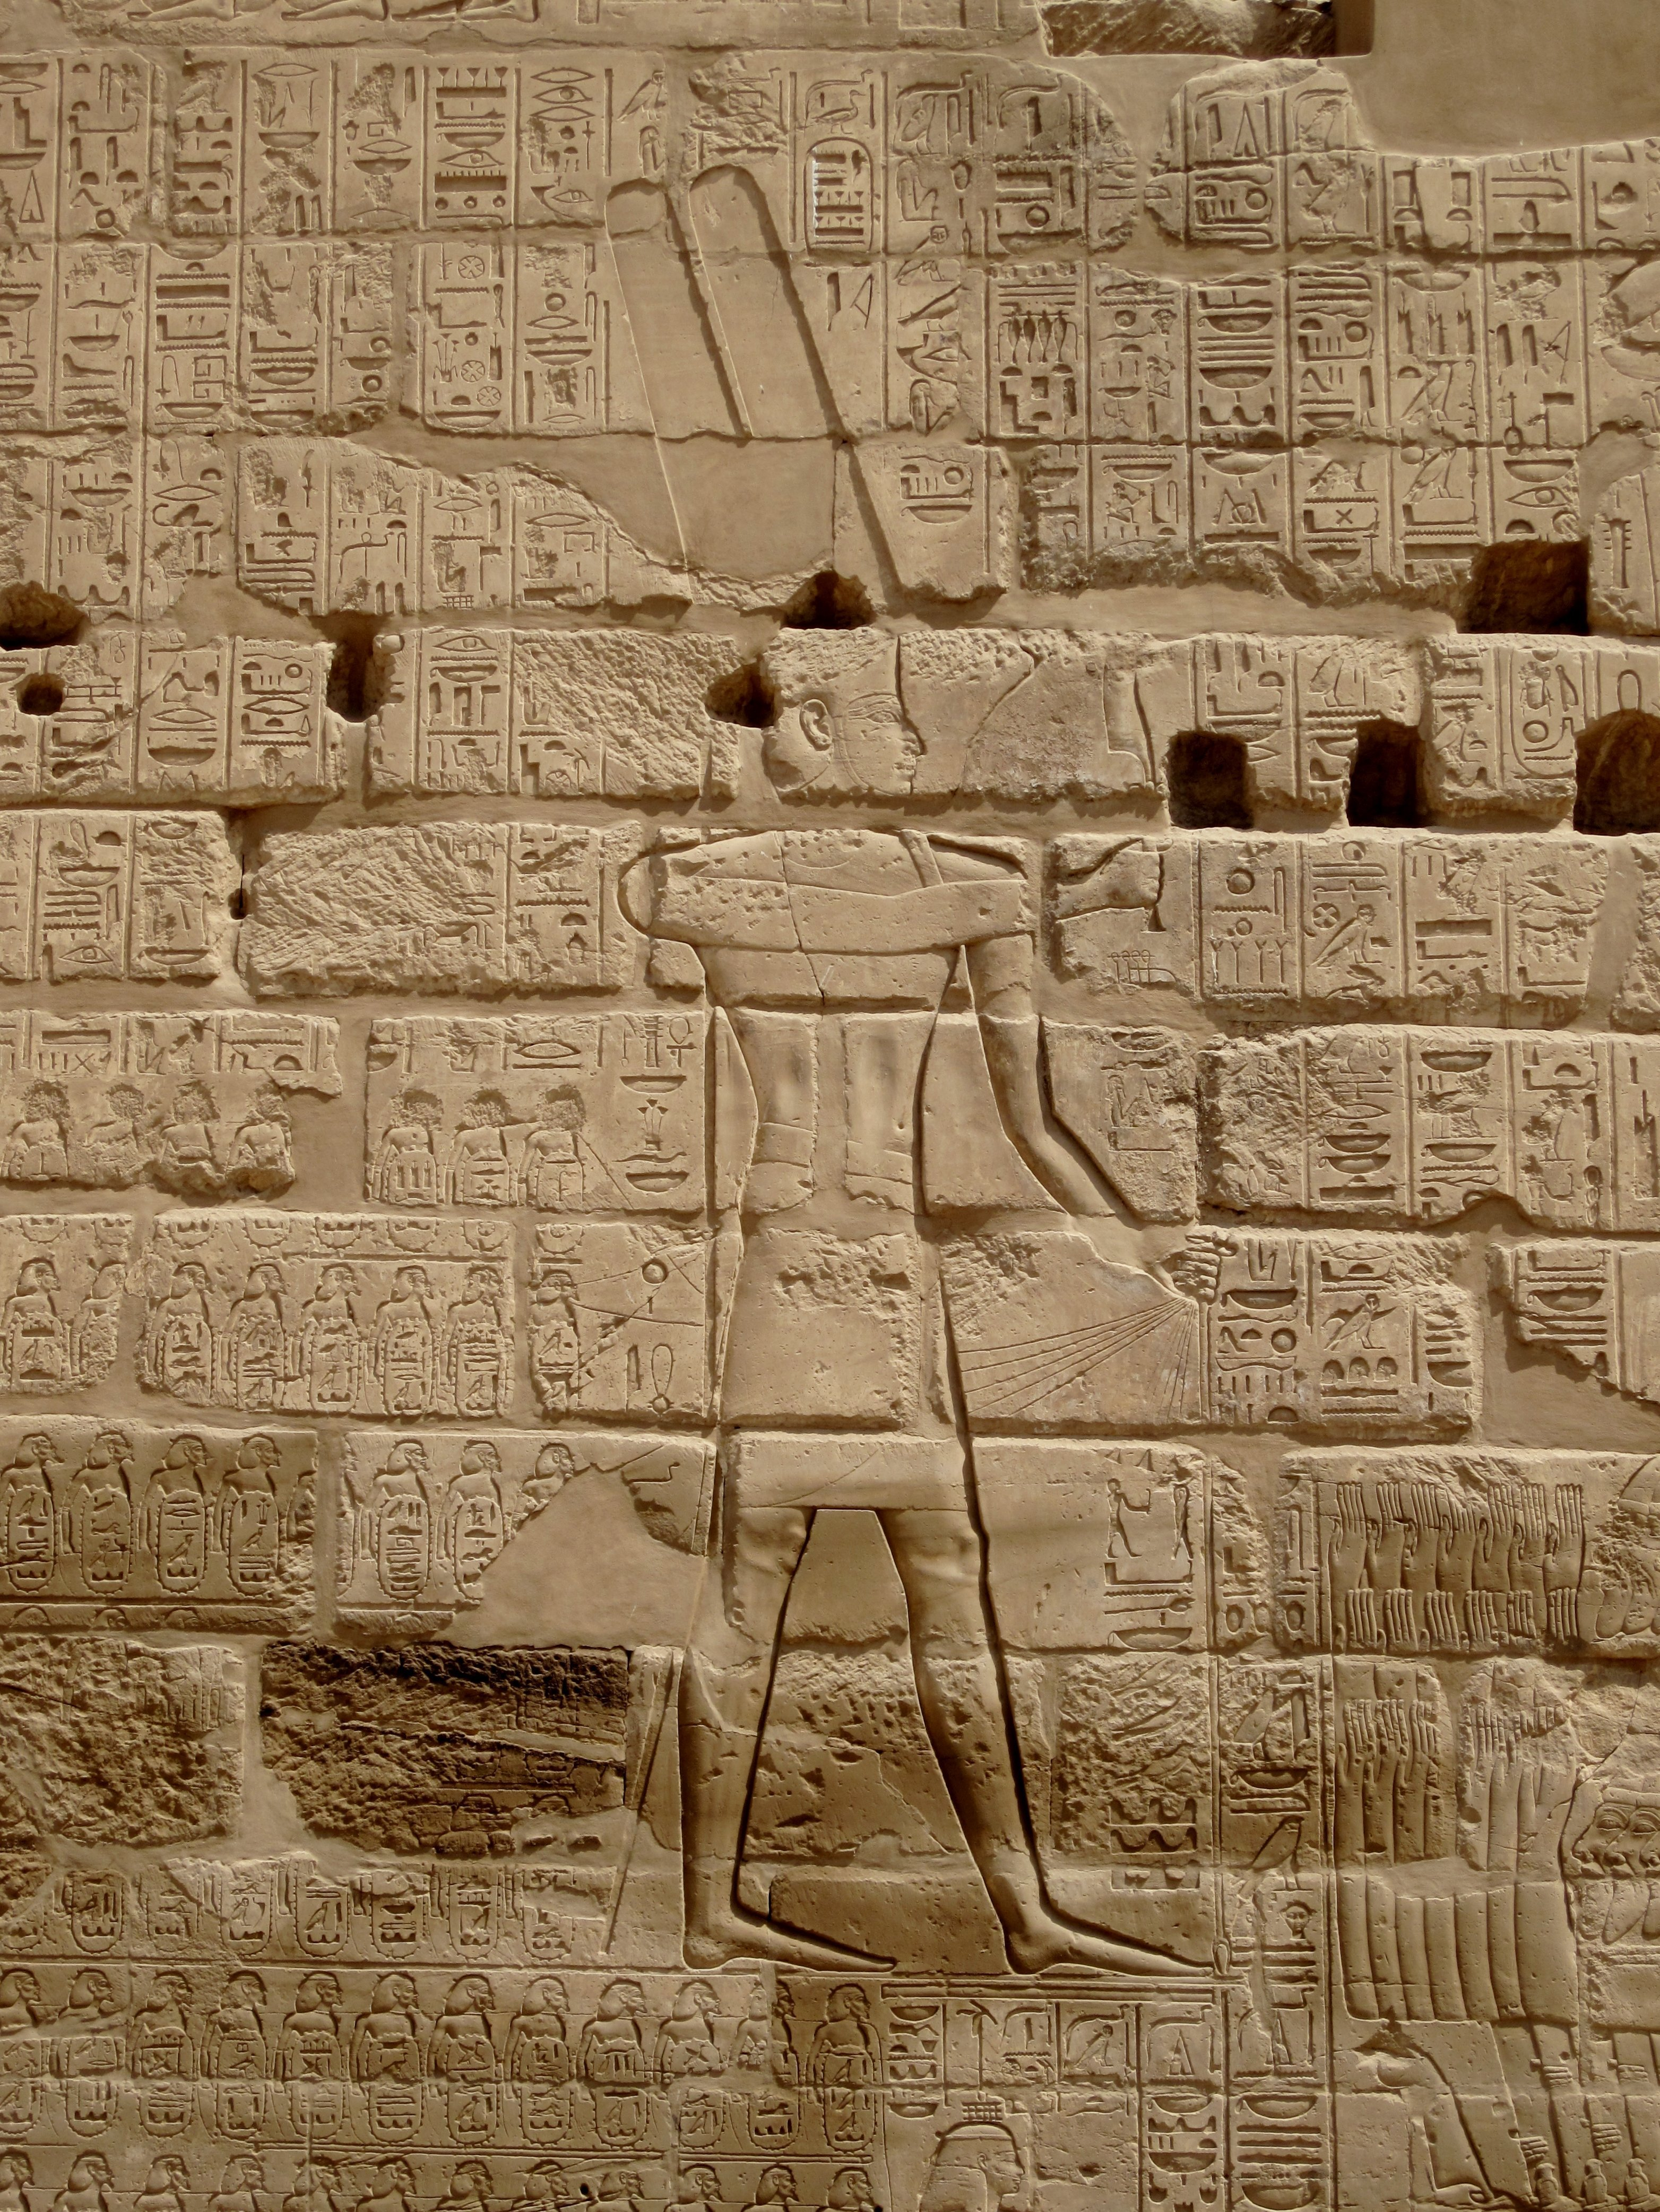 The Relief of Shoshenq I's campaign list at the southern exterior walls of the temple of Karnak, north of Luxor, Egypt